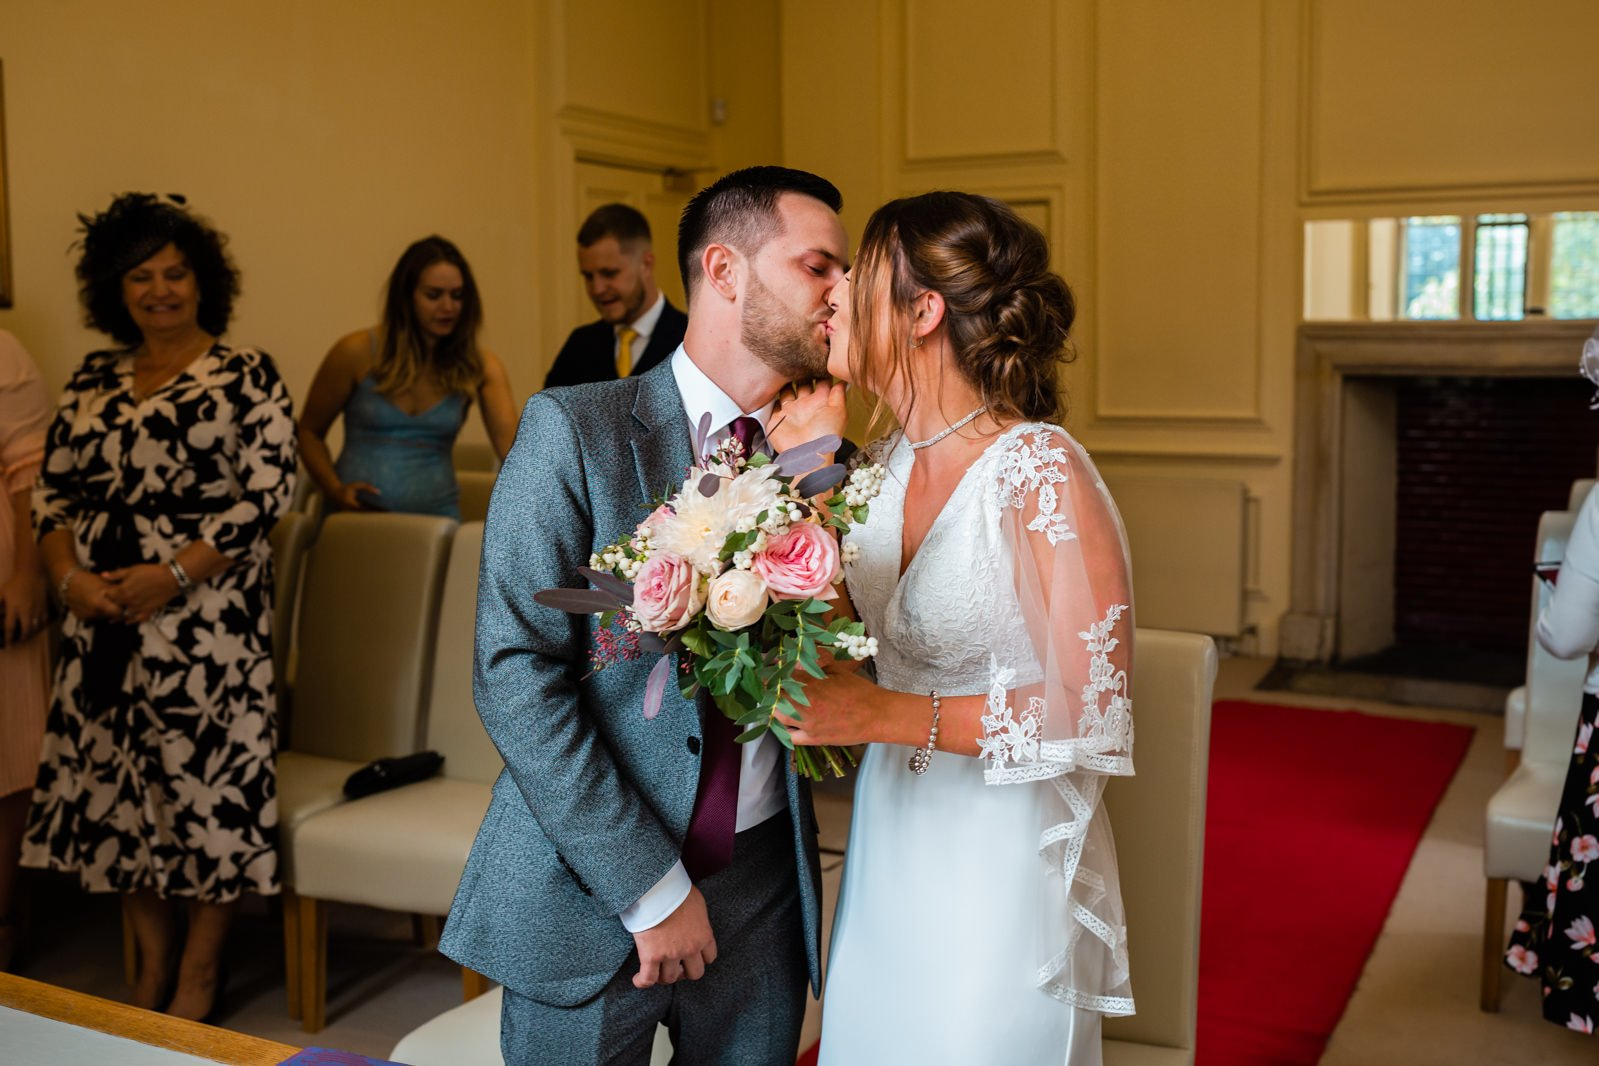 The Elephant Pangbourne Wedding - Stunning Kayleigh & Shane 5